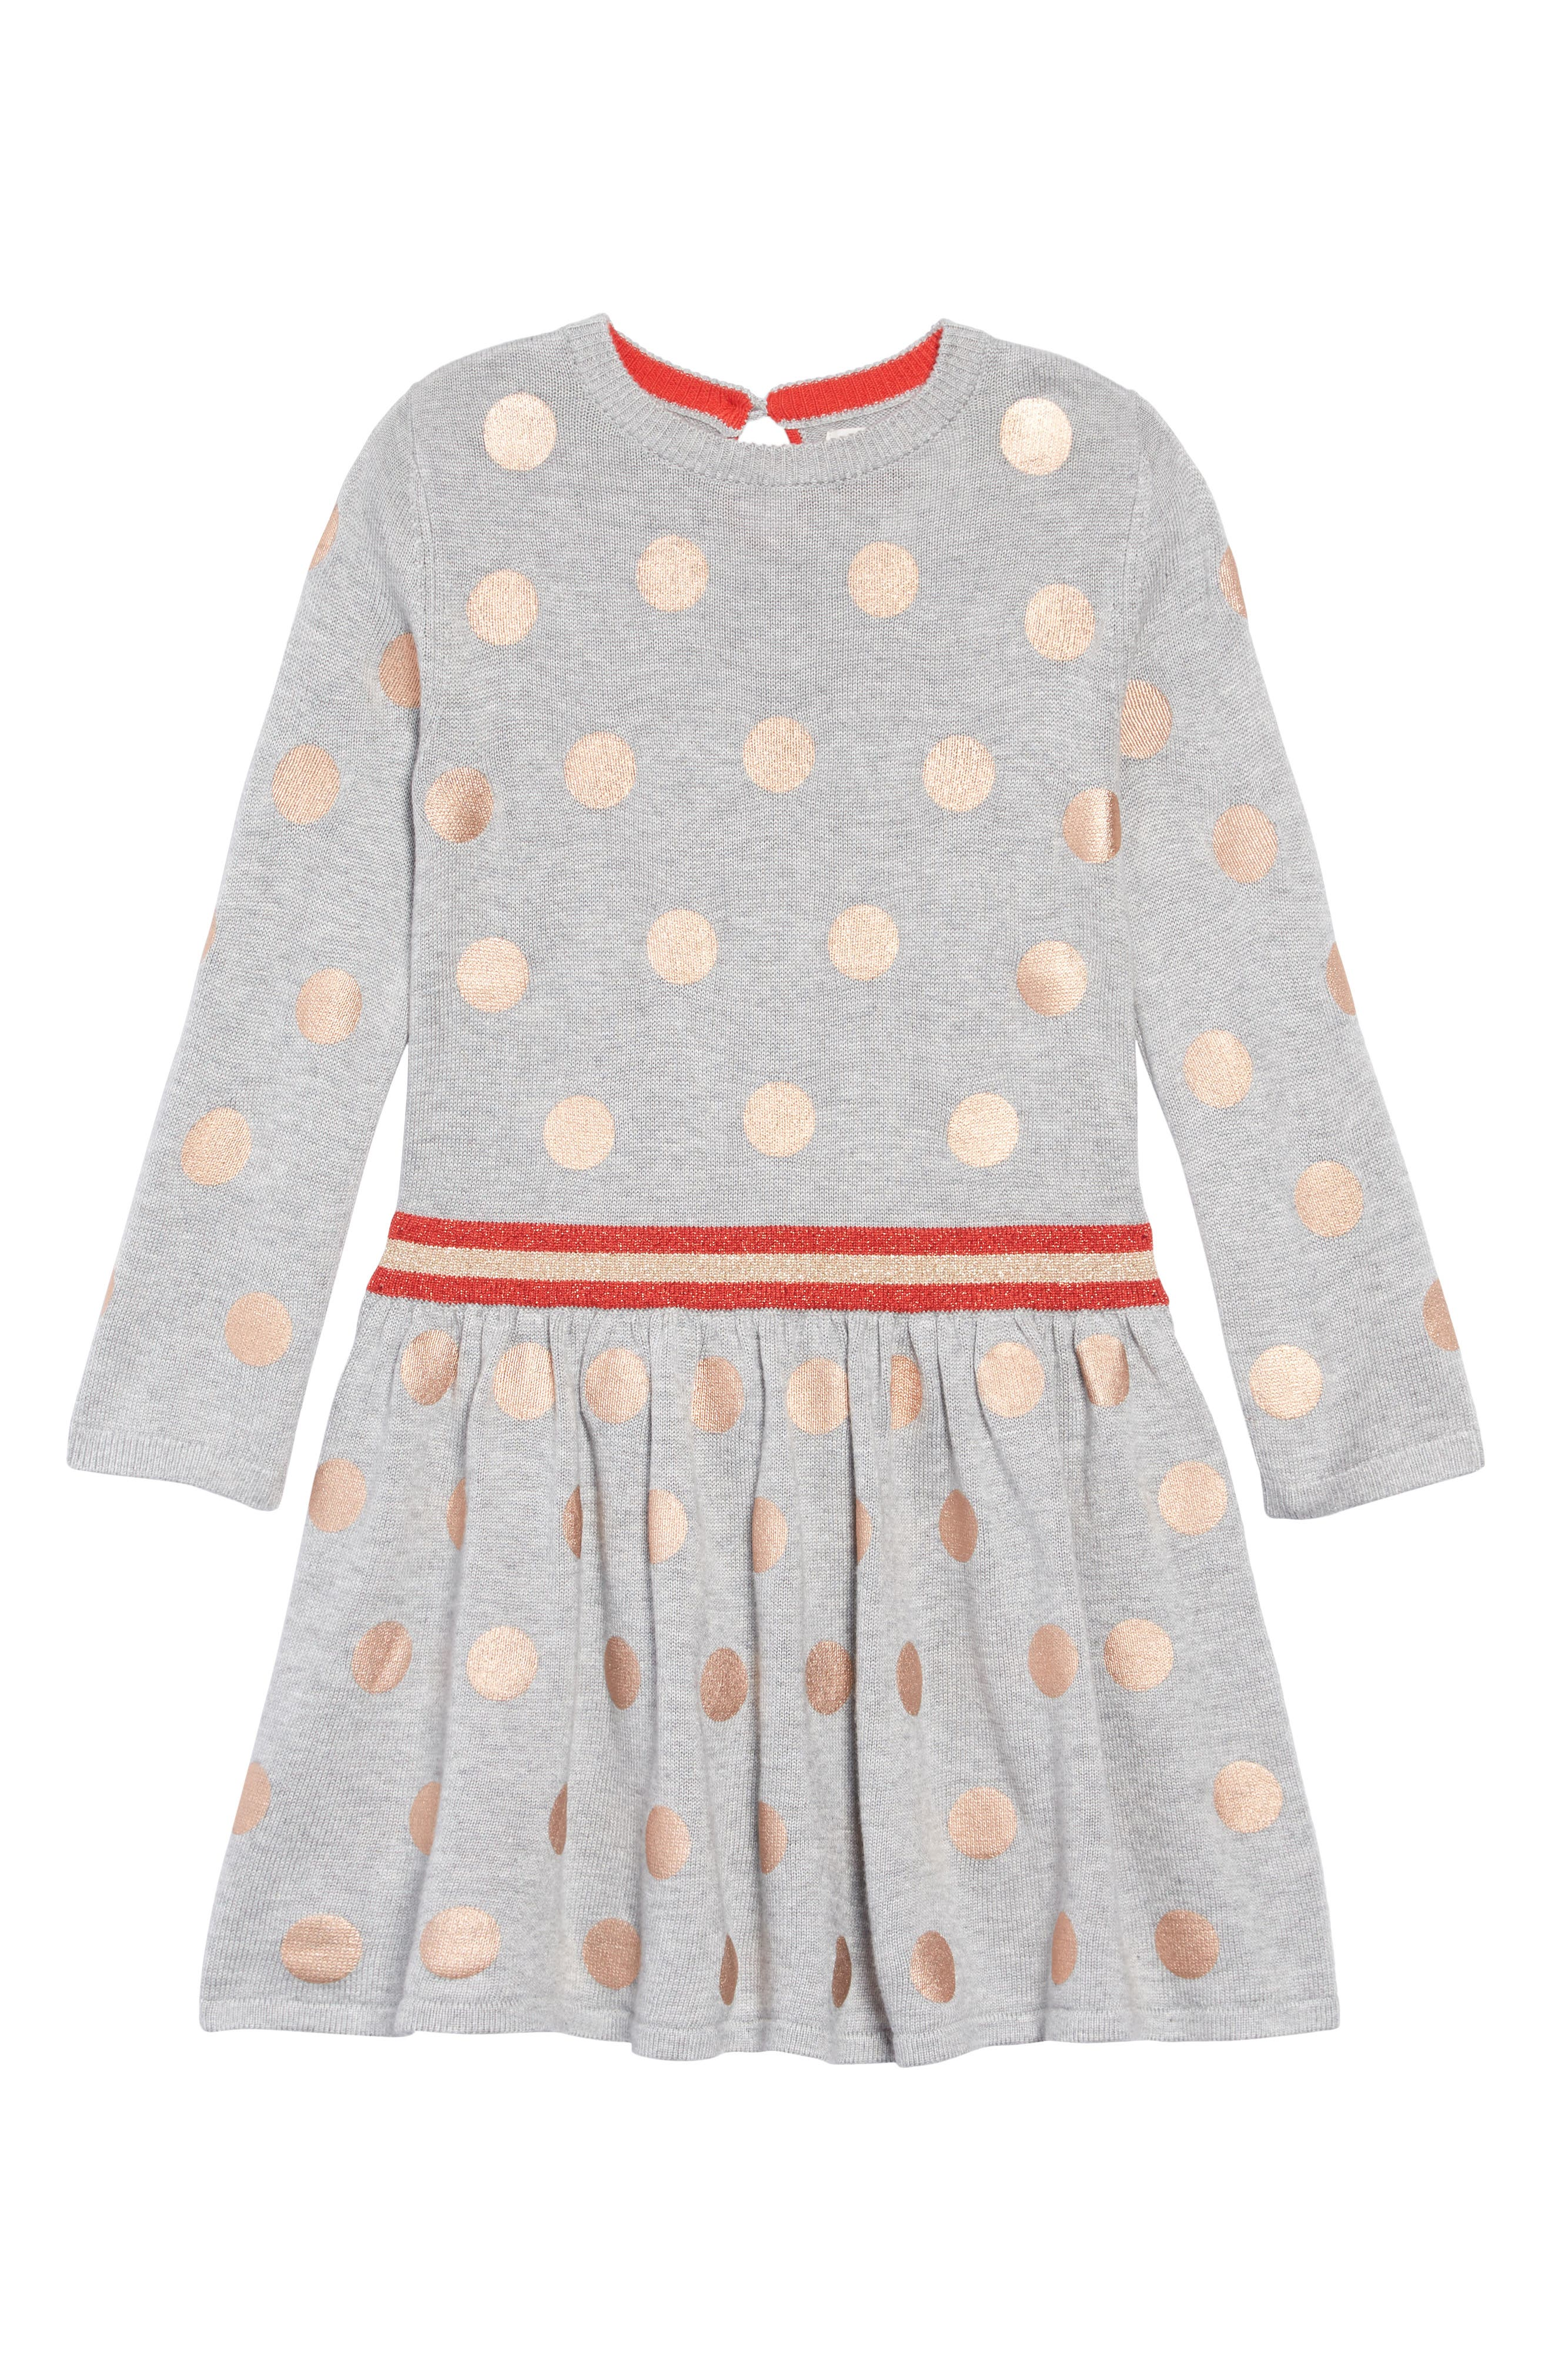 Mini Boden Foil Spot Knit Dress,                         Main,                         color, GRY GREY MARL FOIL SPOTS